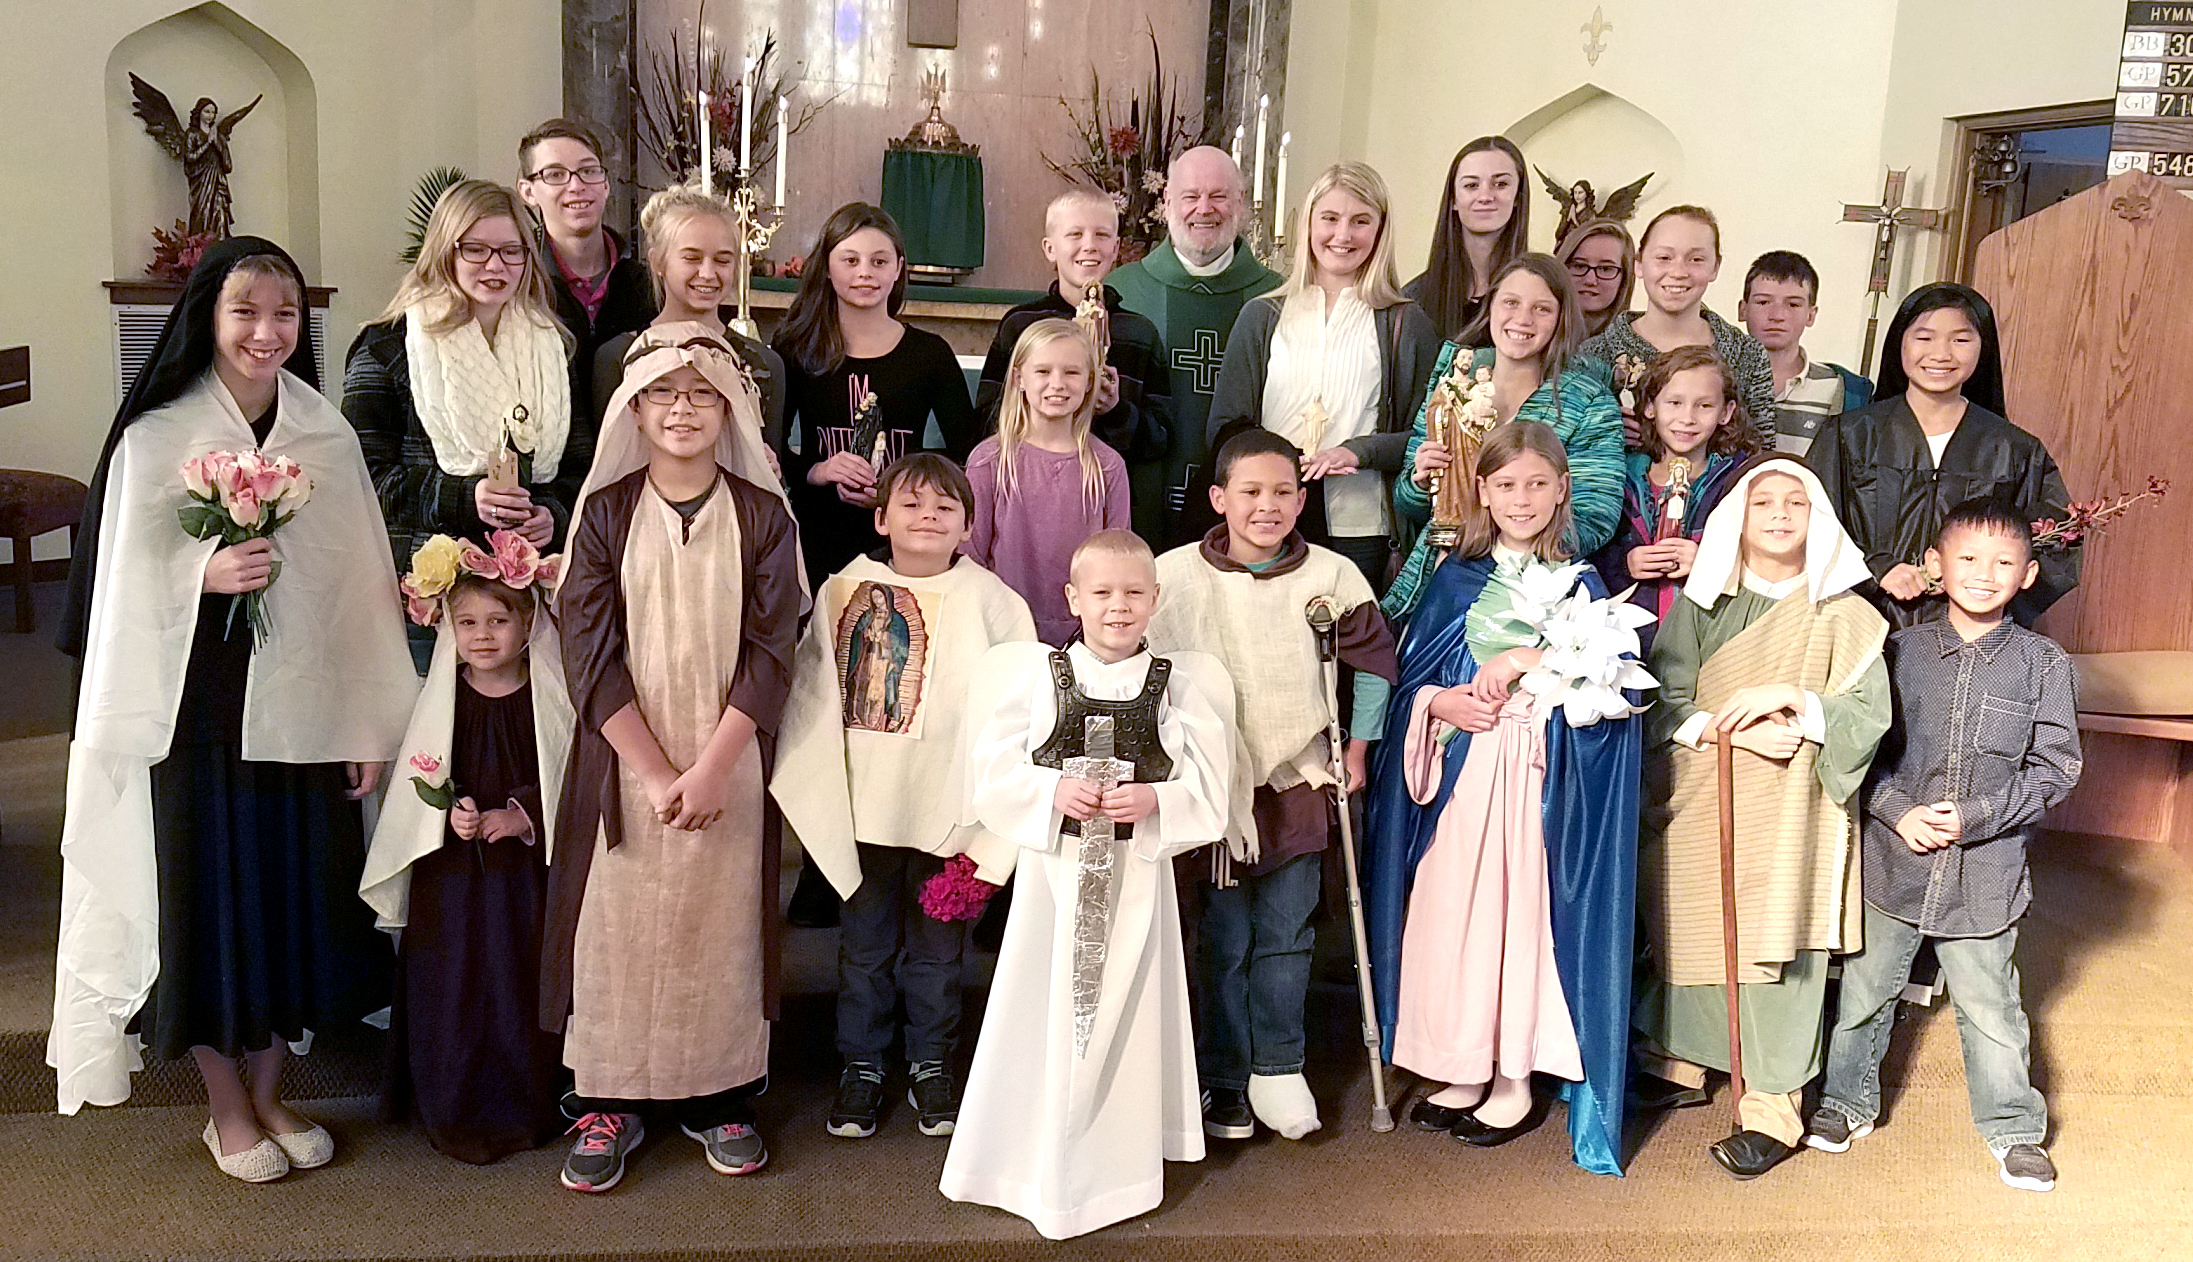 PARISH SCHOOL OF RELIGION— The PSR classes held Oct. 29 in St. Francis de Sales Church presented an All Saints Parade just in time for the Solemnity of All Saints. Saints included Our Lady of Guadalupe, St. George, St. Rose Lima, and St. Joseph, to name a few. Father David Miller serves as pastor of St. Francis de Sales in Lebanon. Sister Barbara Sledziewska, CSFN, serves the parish as its Director of Religious Education. (Submitted photos)